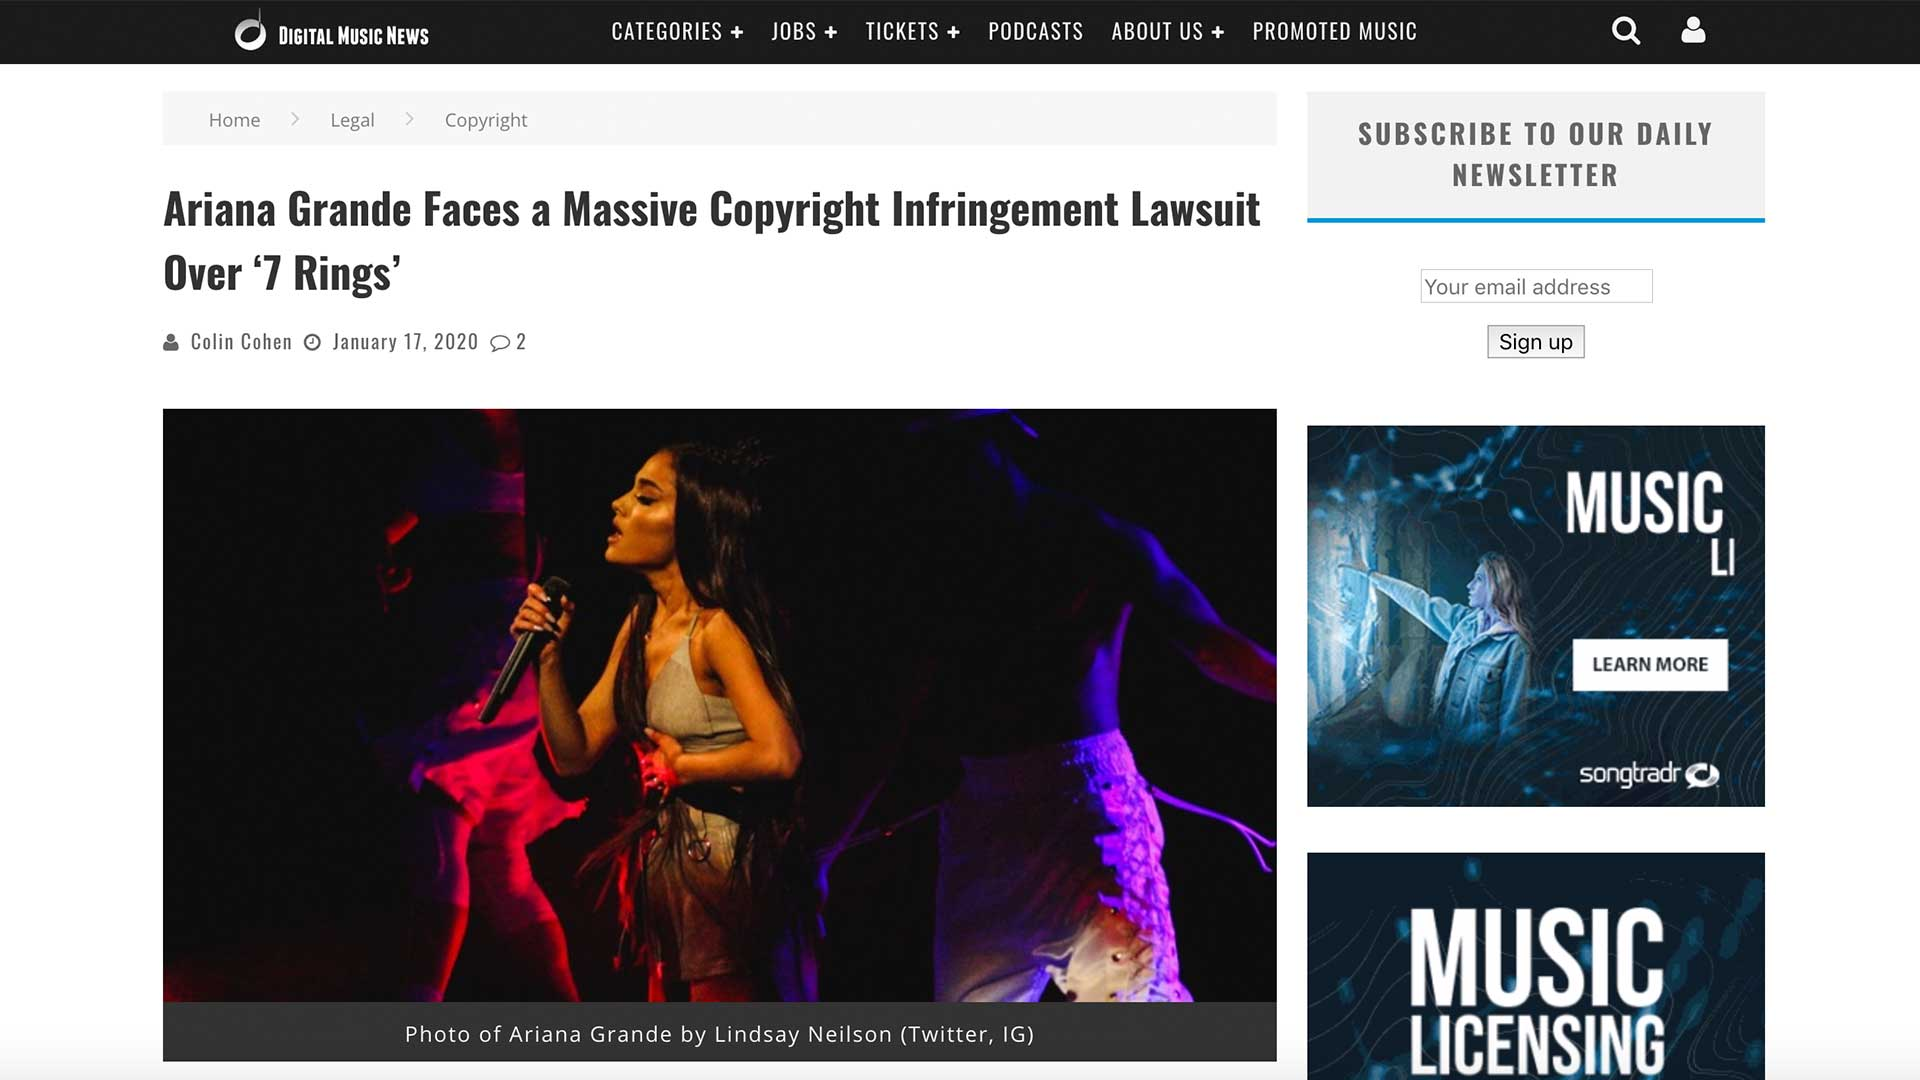 Fairness Rocks News Ariana Grande Faces a Massive Copyright Infringement Lawsuit Over '7 Rings'